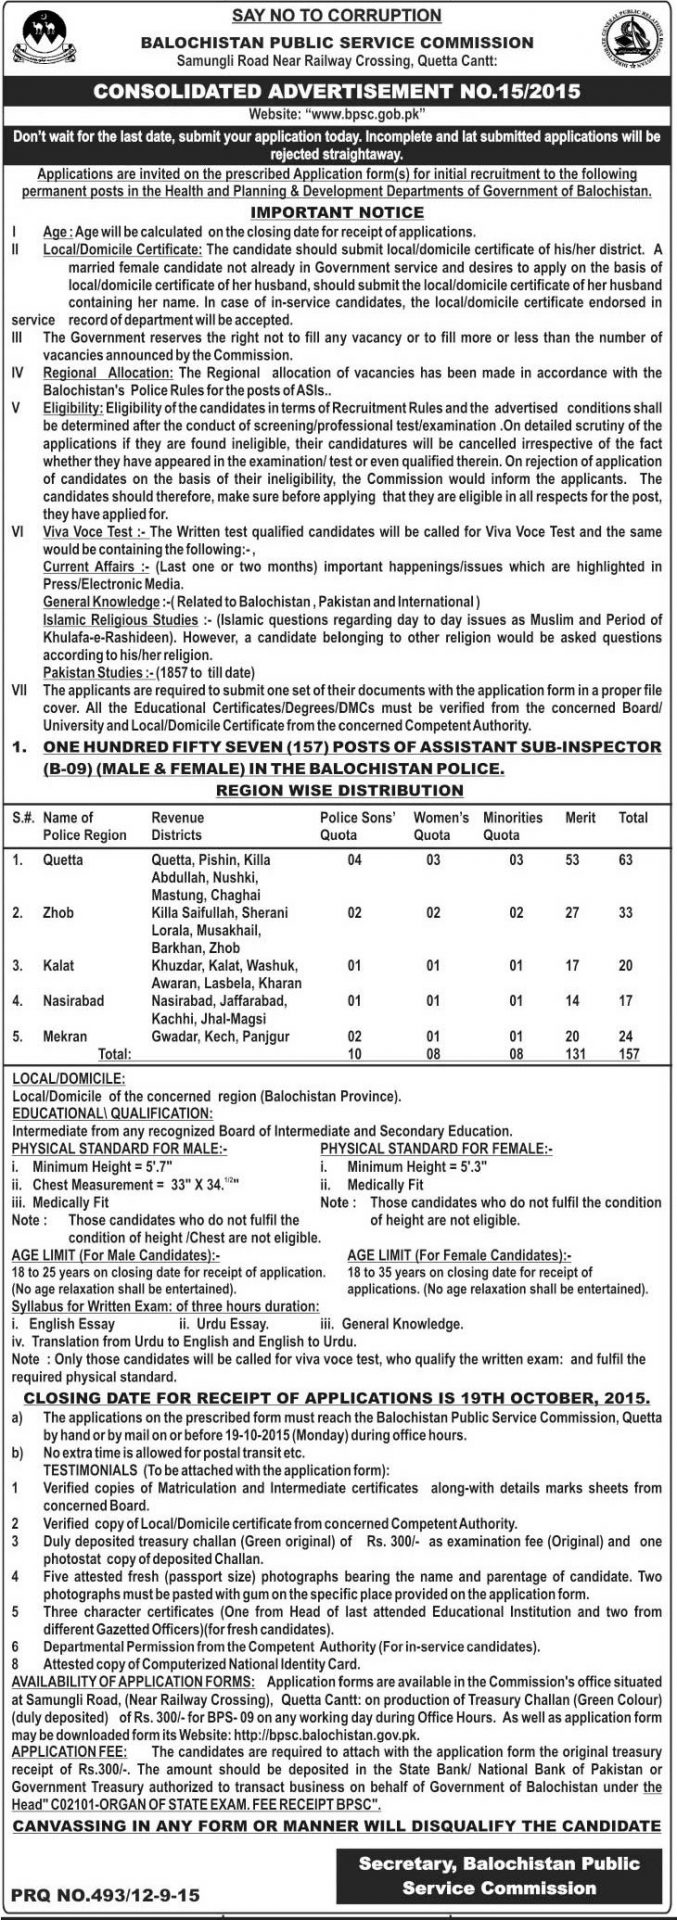 BPSC Assistant Sub Inspector ASI Jobs 2015 Application Form Download Online